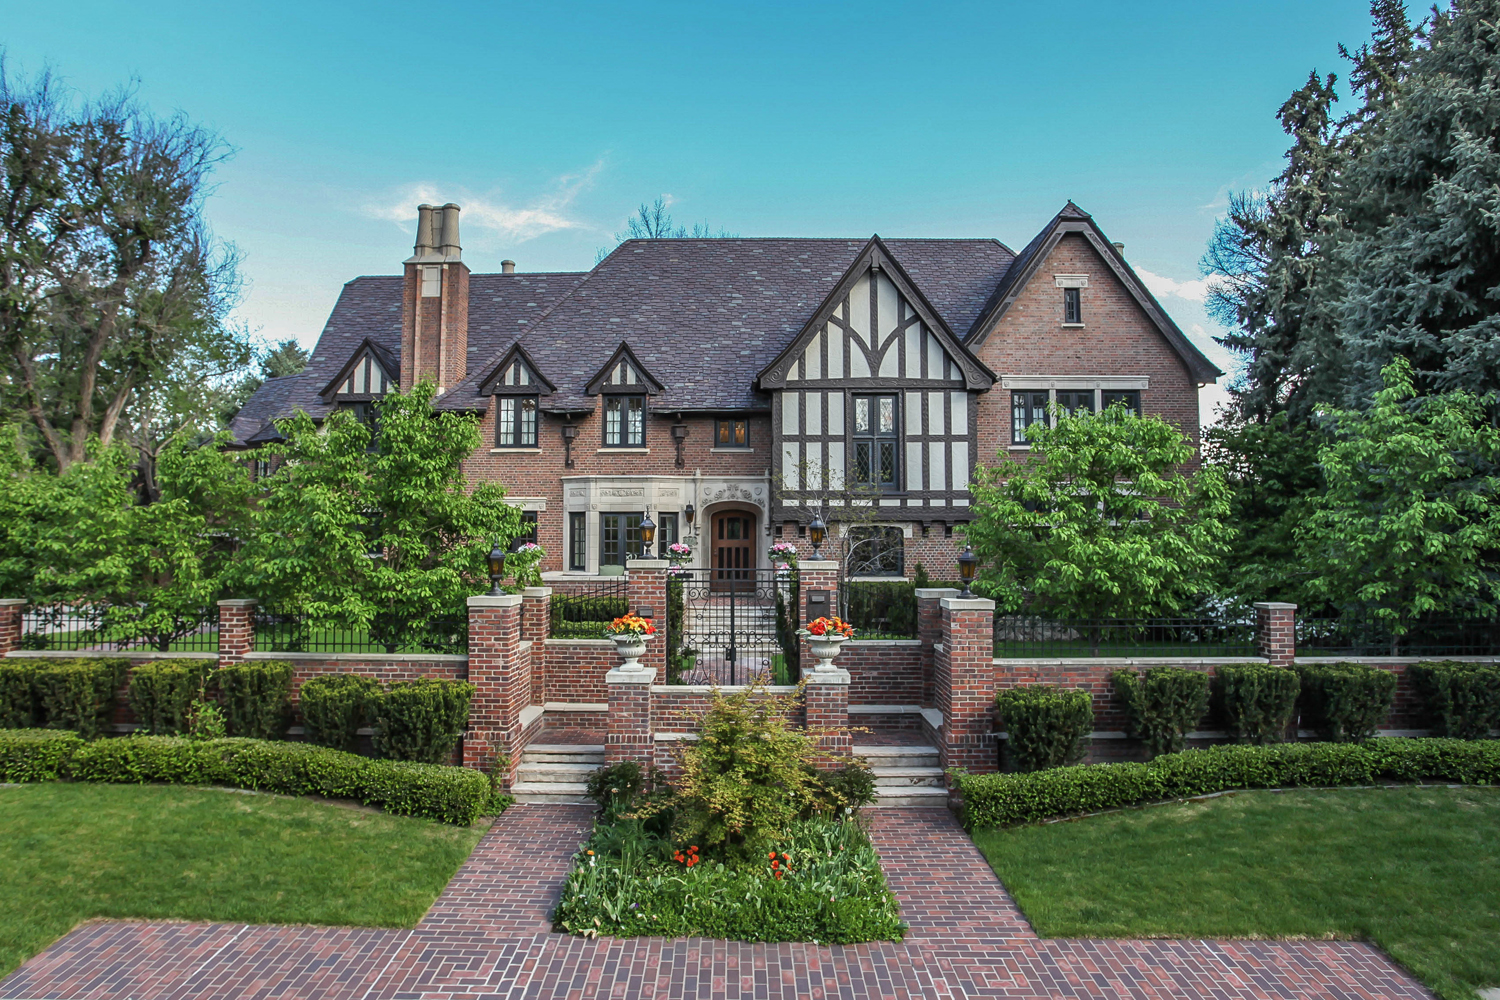 Casa Unifamiliar por un Venta en The Finest & Most Inspiring Property in Denver Country Club 575 Circle Drive Country Club, Denver, Colorado, 80206 Estados Unidos